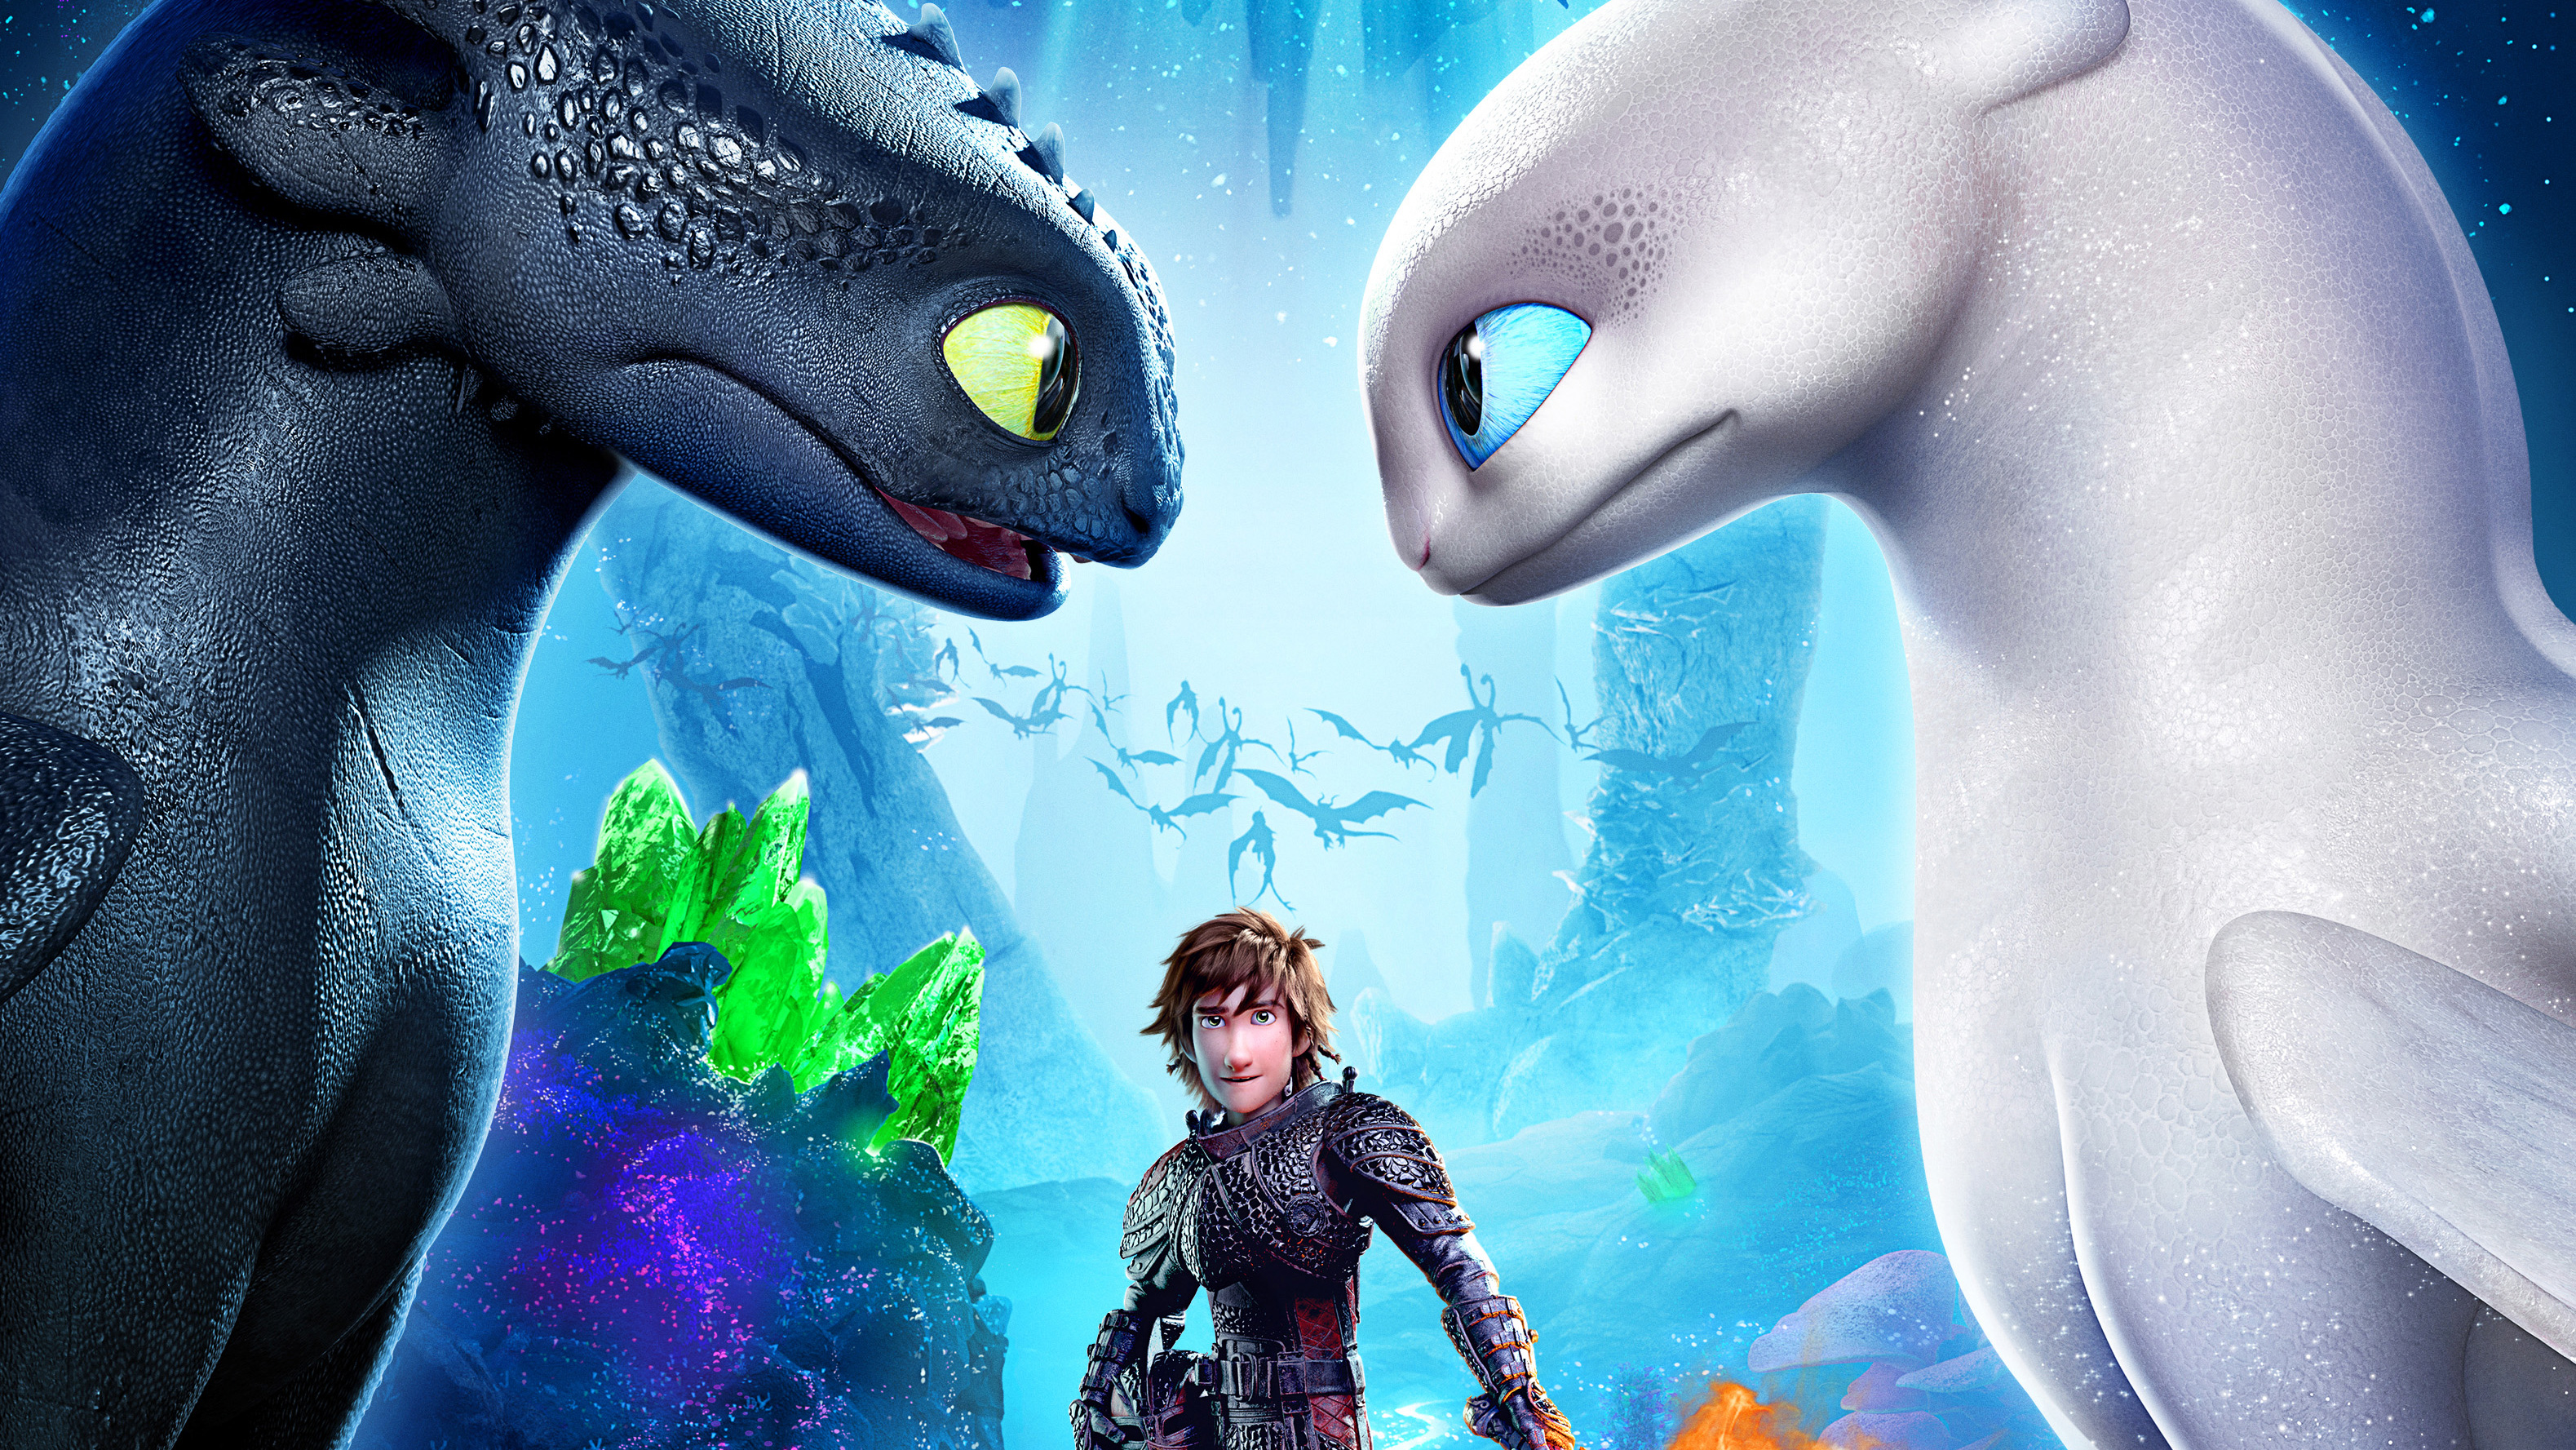 How to train your dragon the hidden world movie poster hd movies how to train your dragon the hidden world movie poster ccuart Image collections